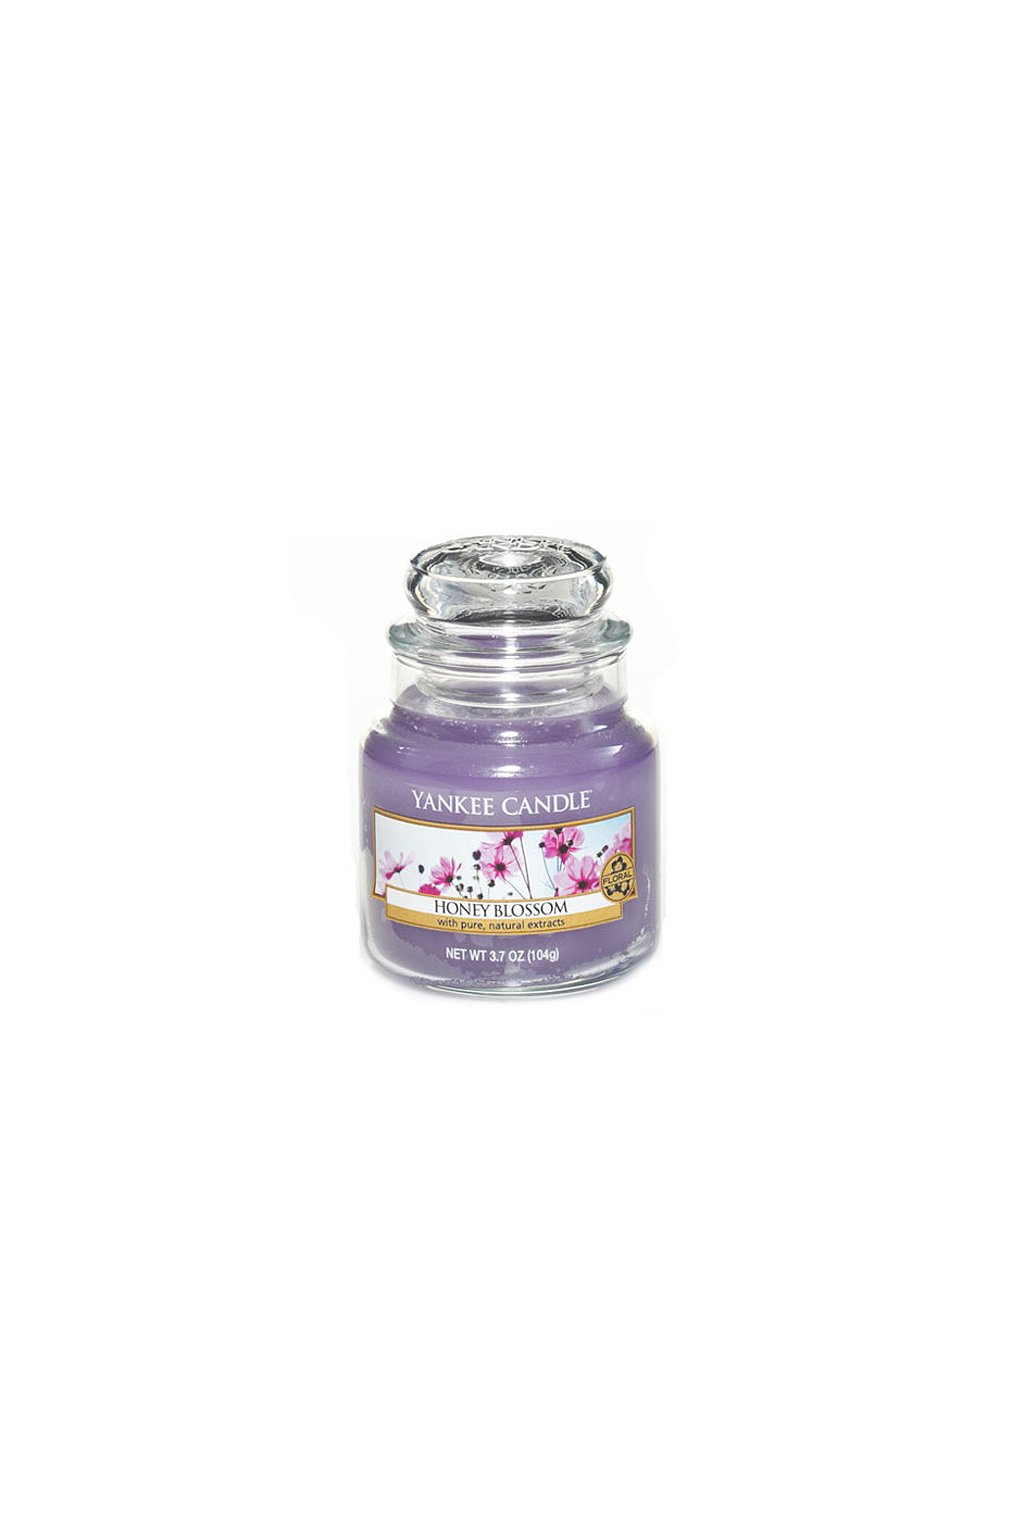 Yankee Candle Honey Blossom 104g